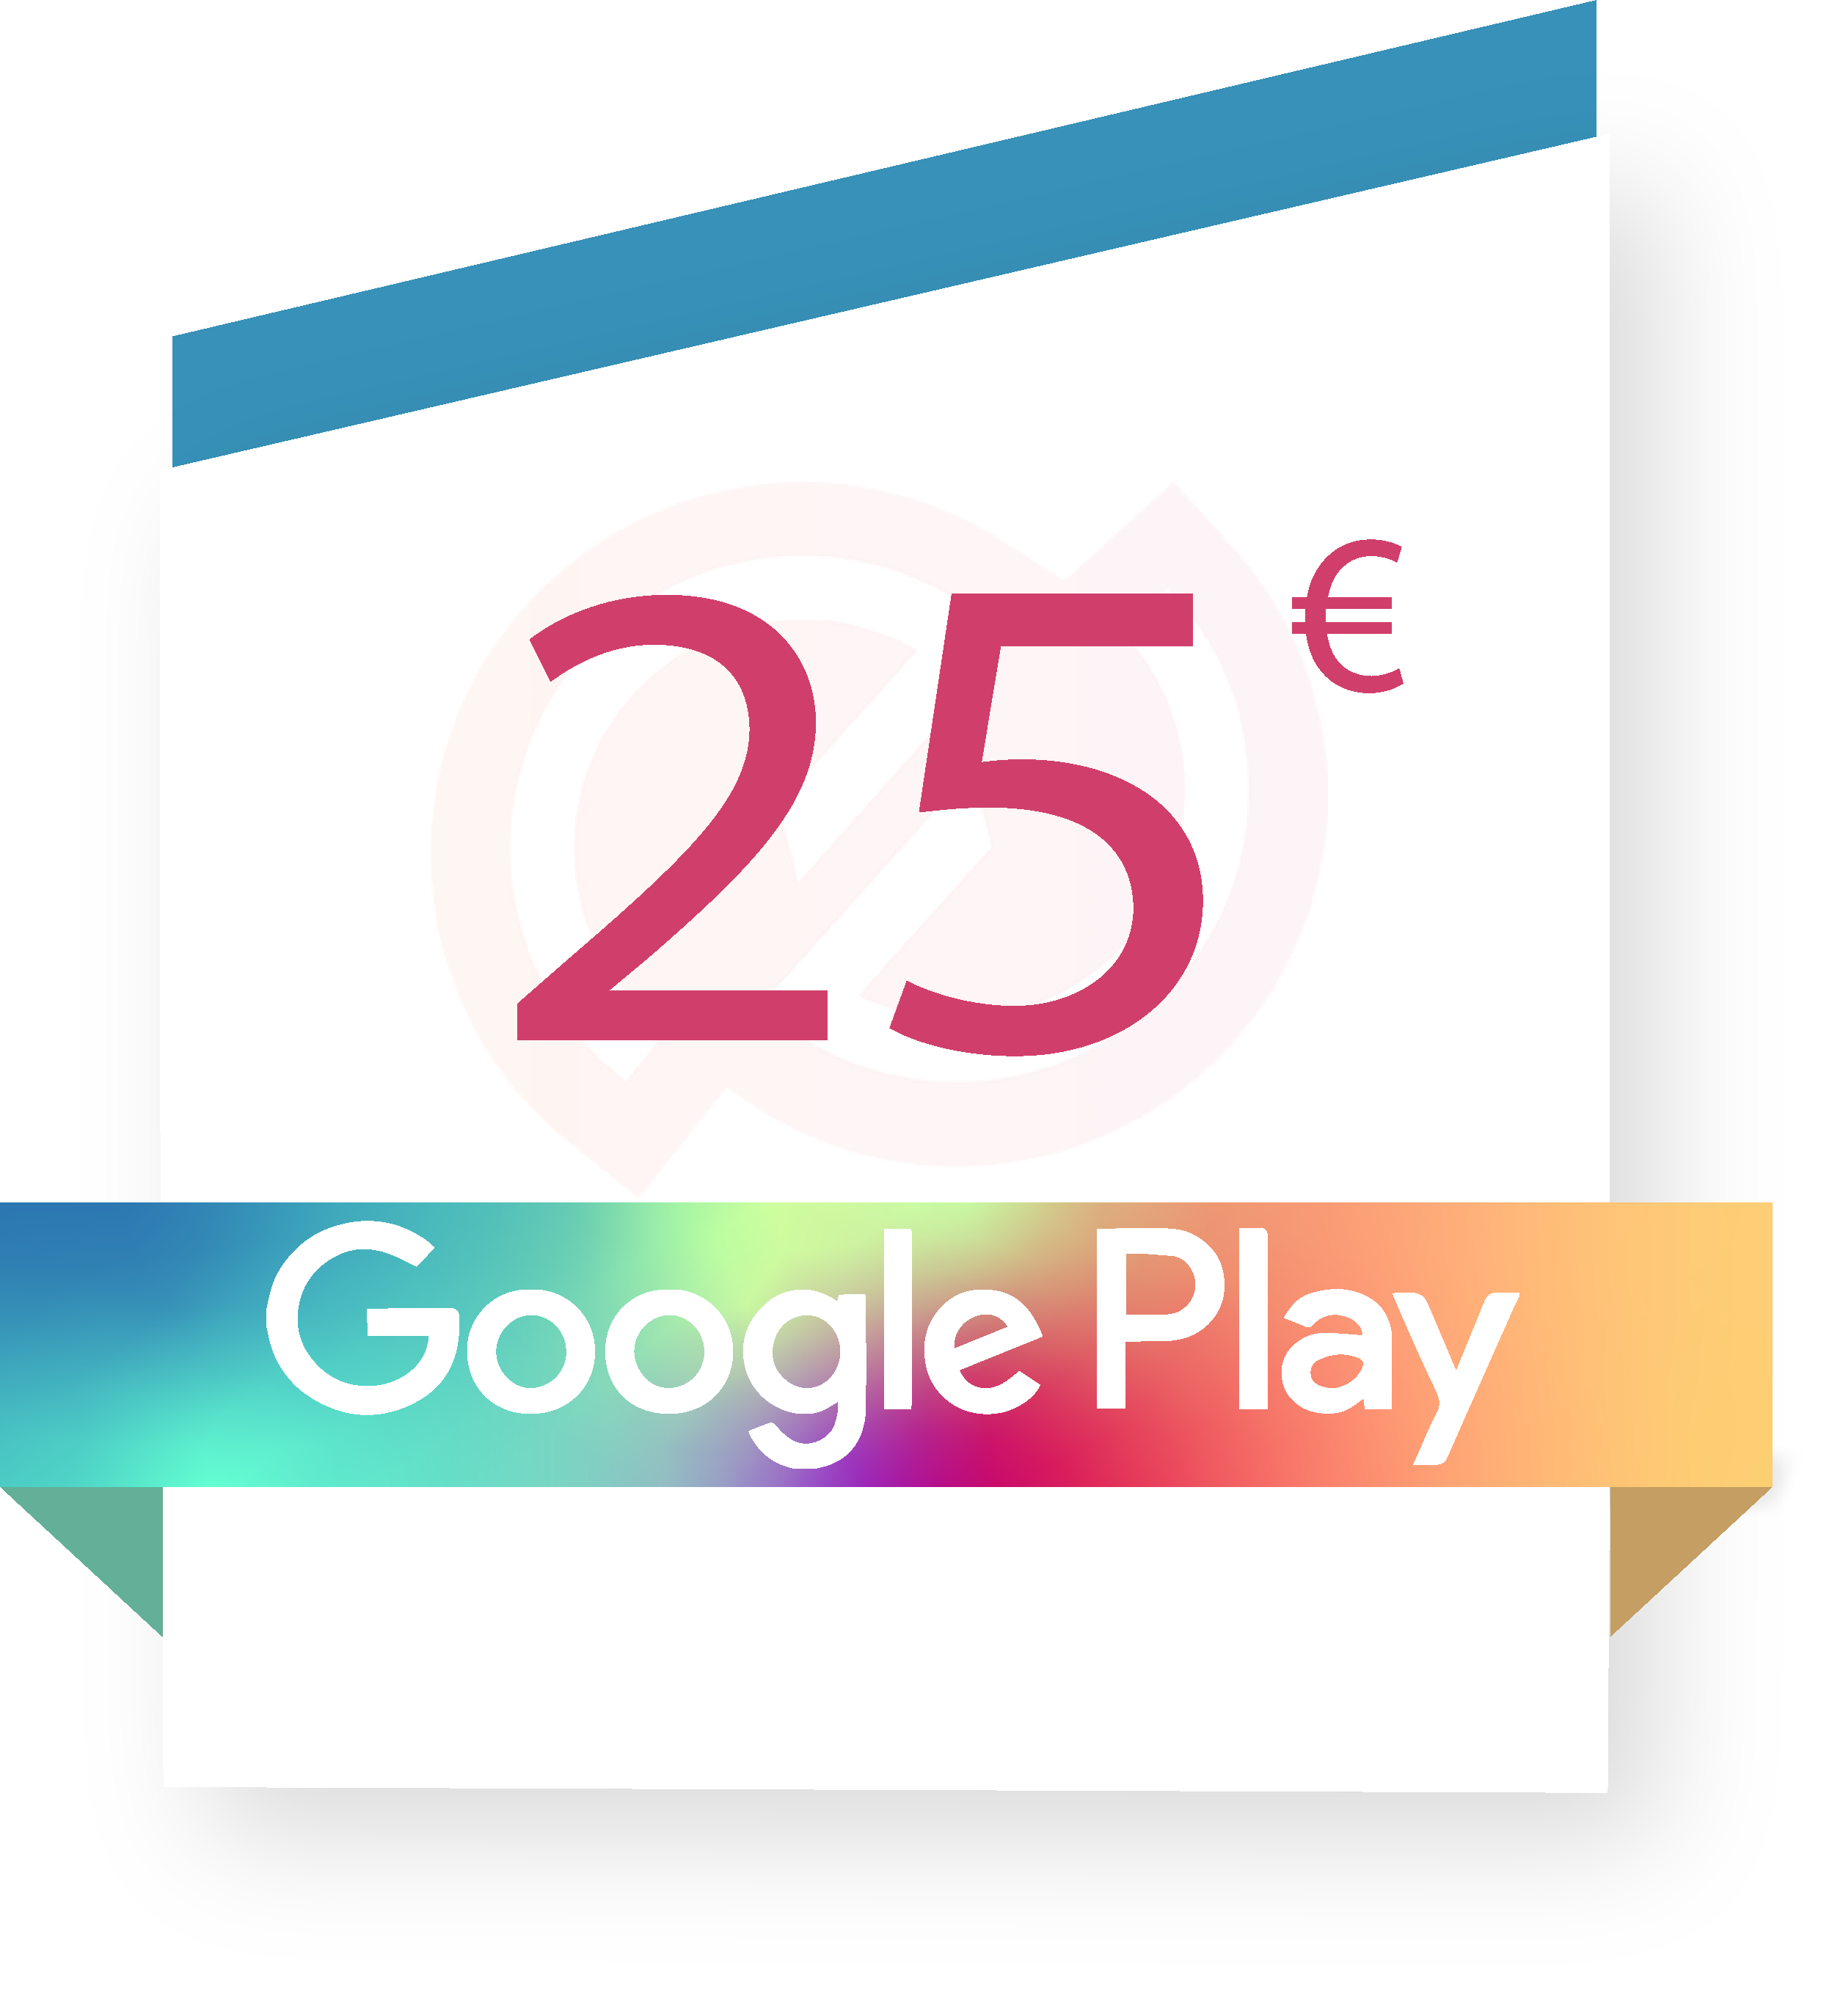 Coupon Google play 25€ sur internet - Gueez